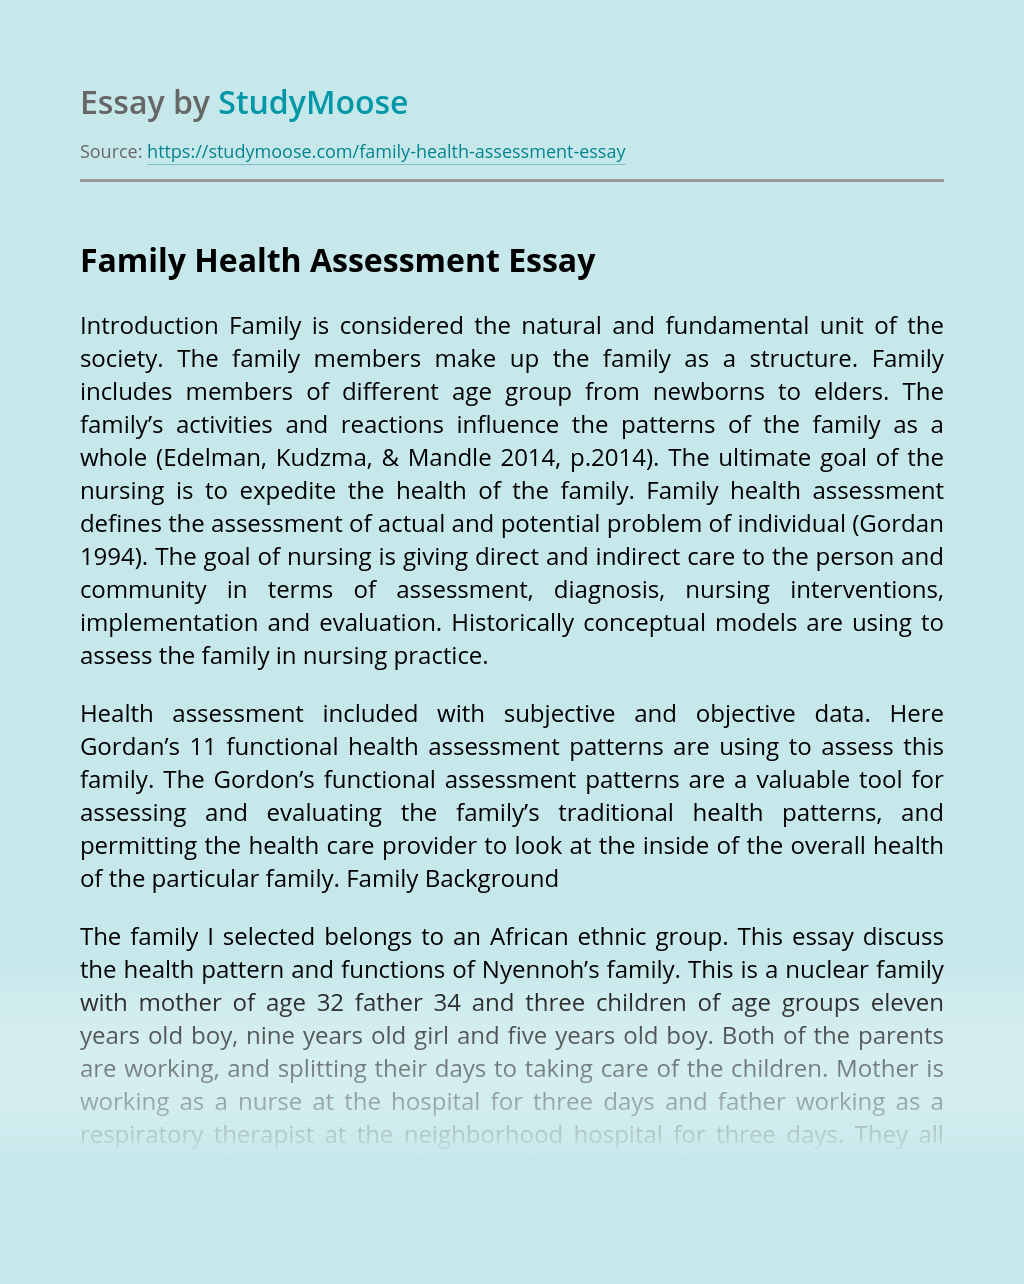 Family Health Assessment